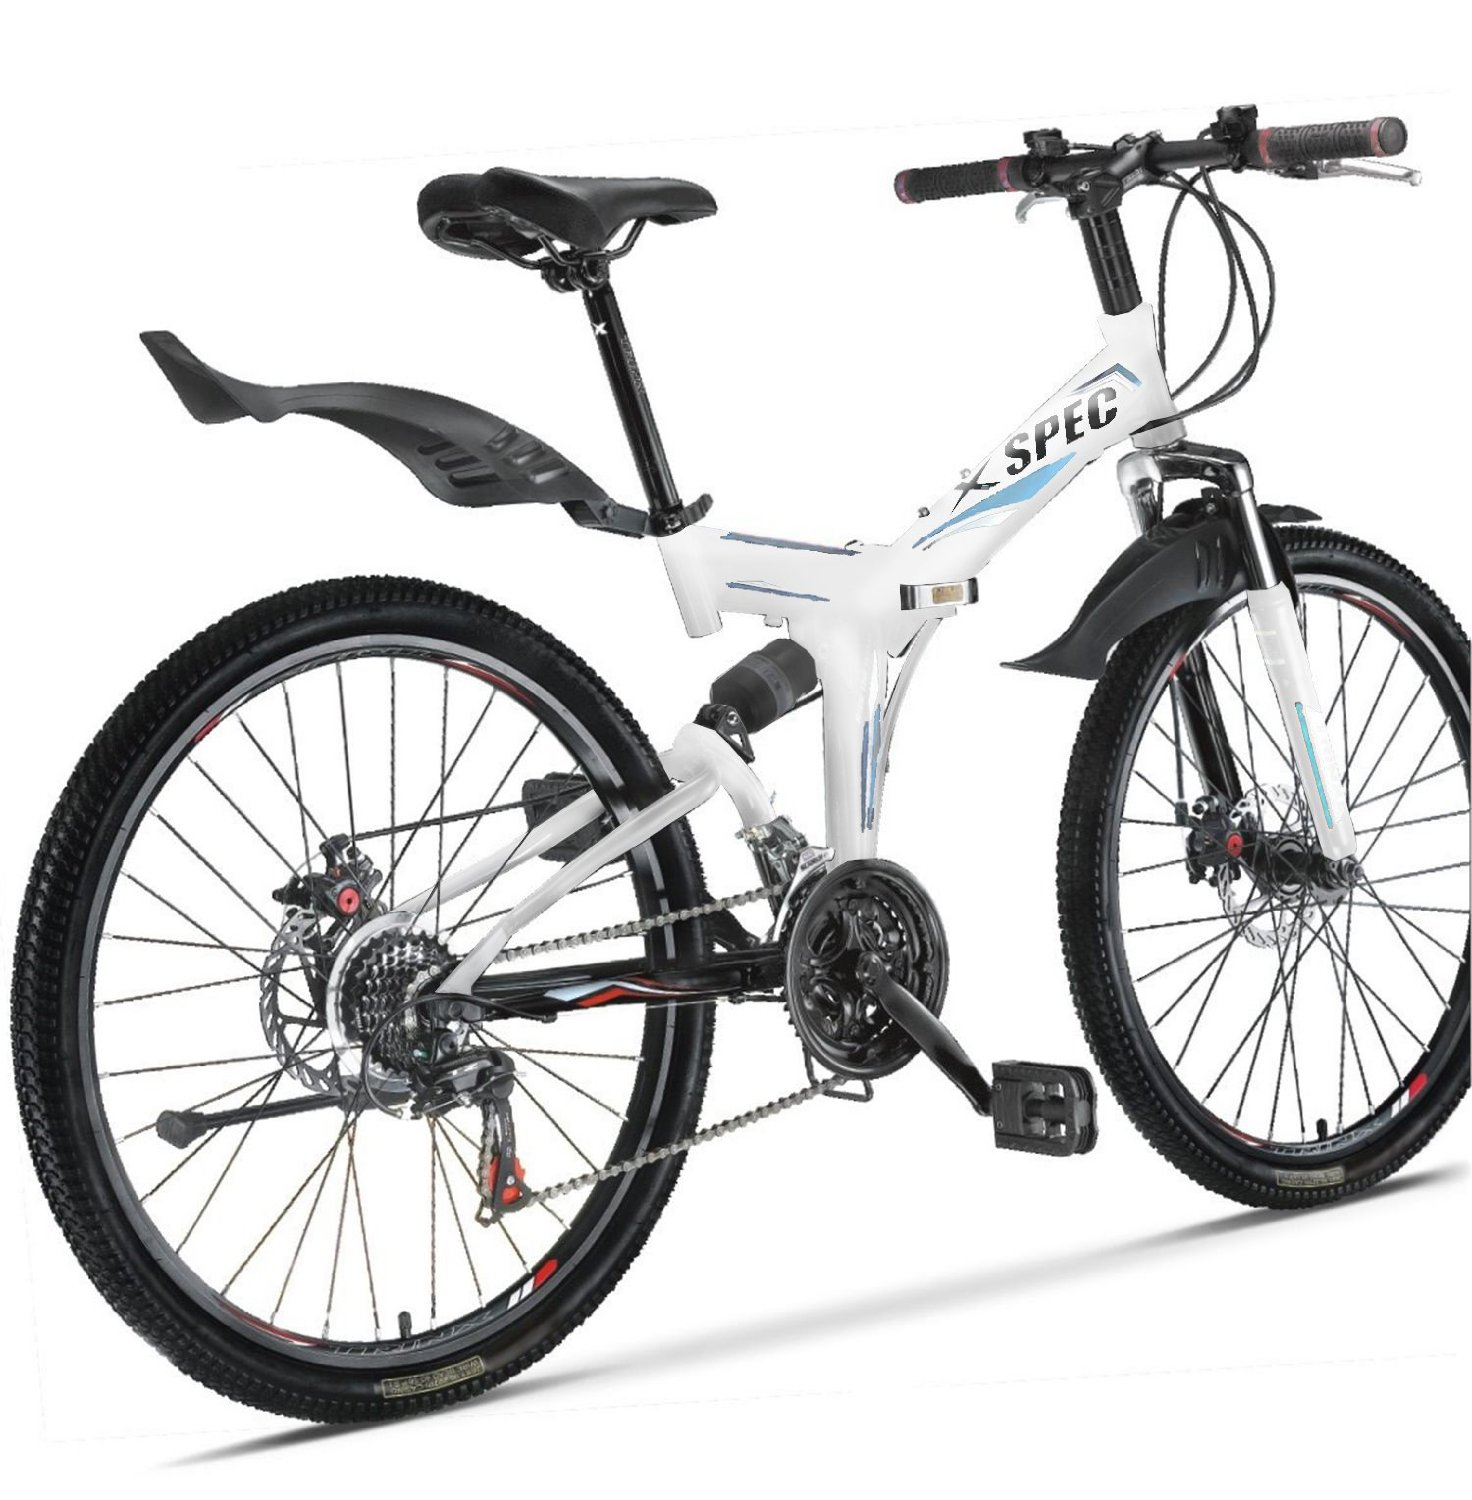 Xspec Folding Mountain Bike